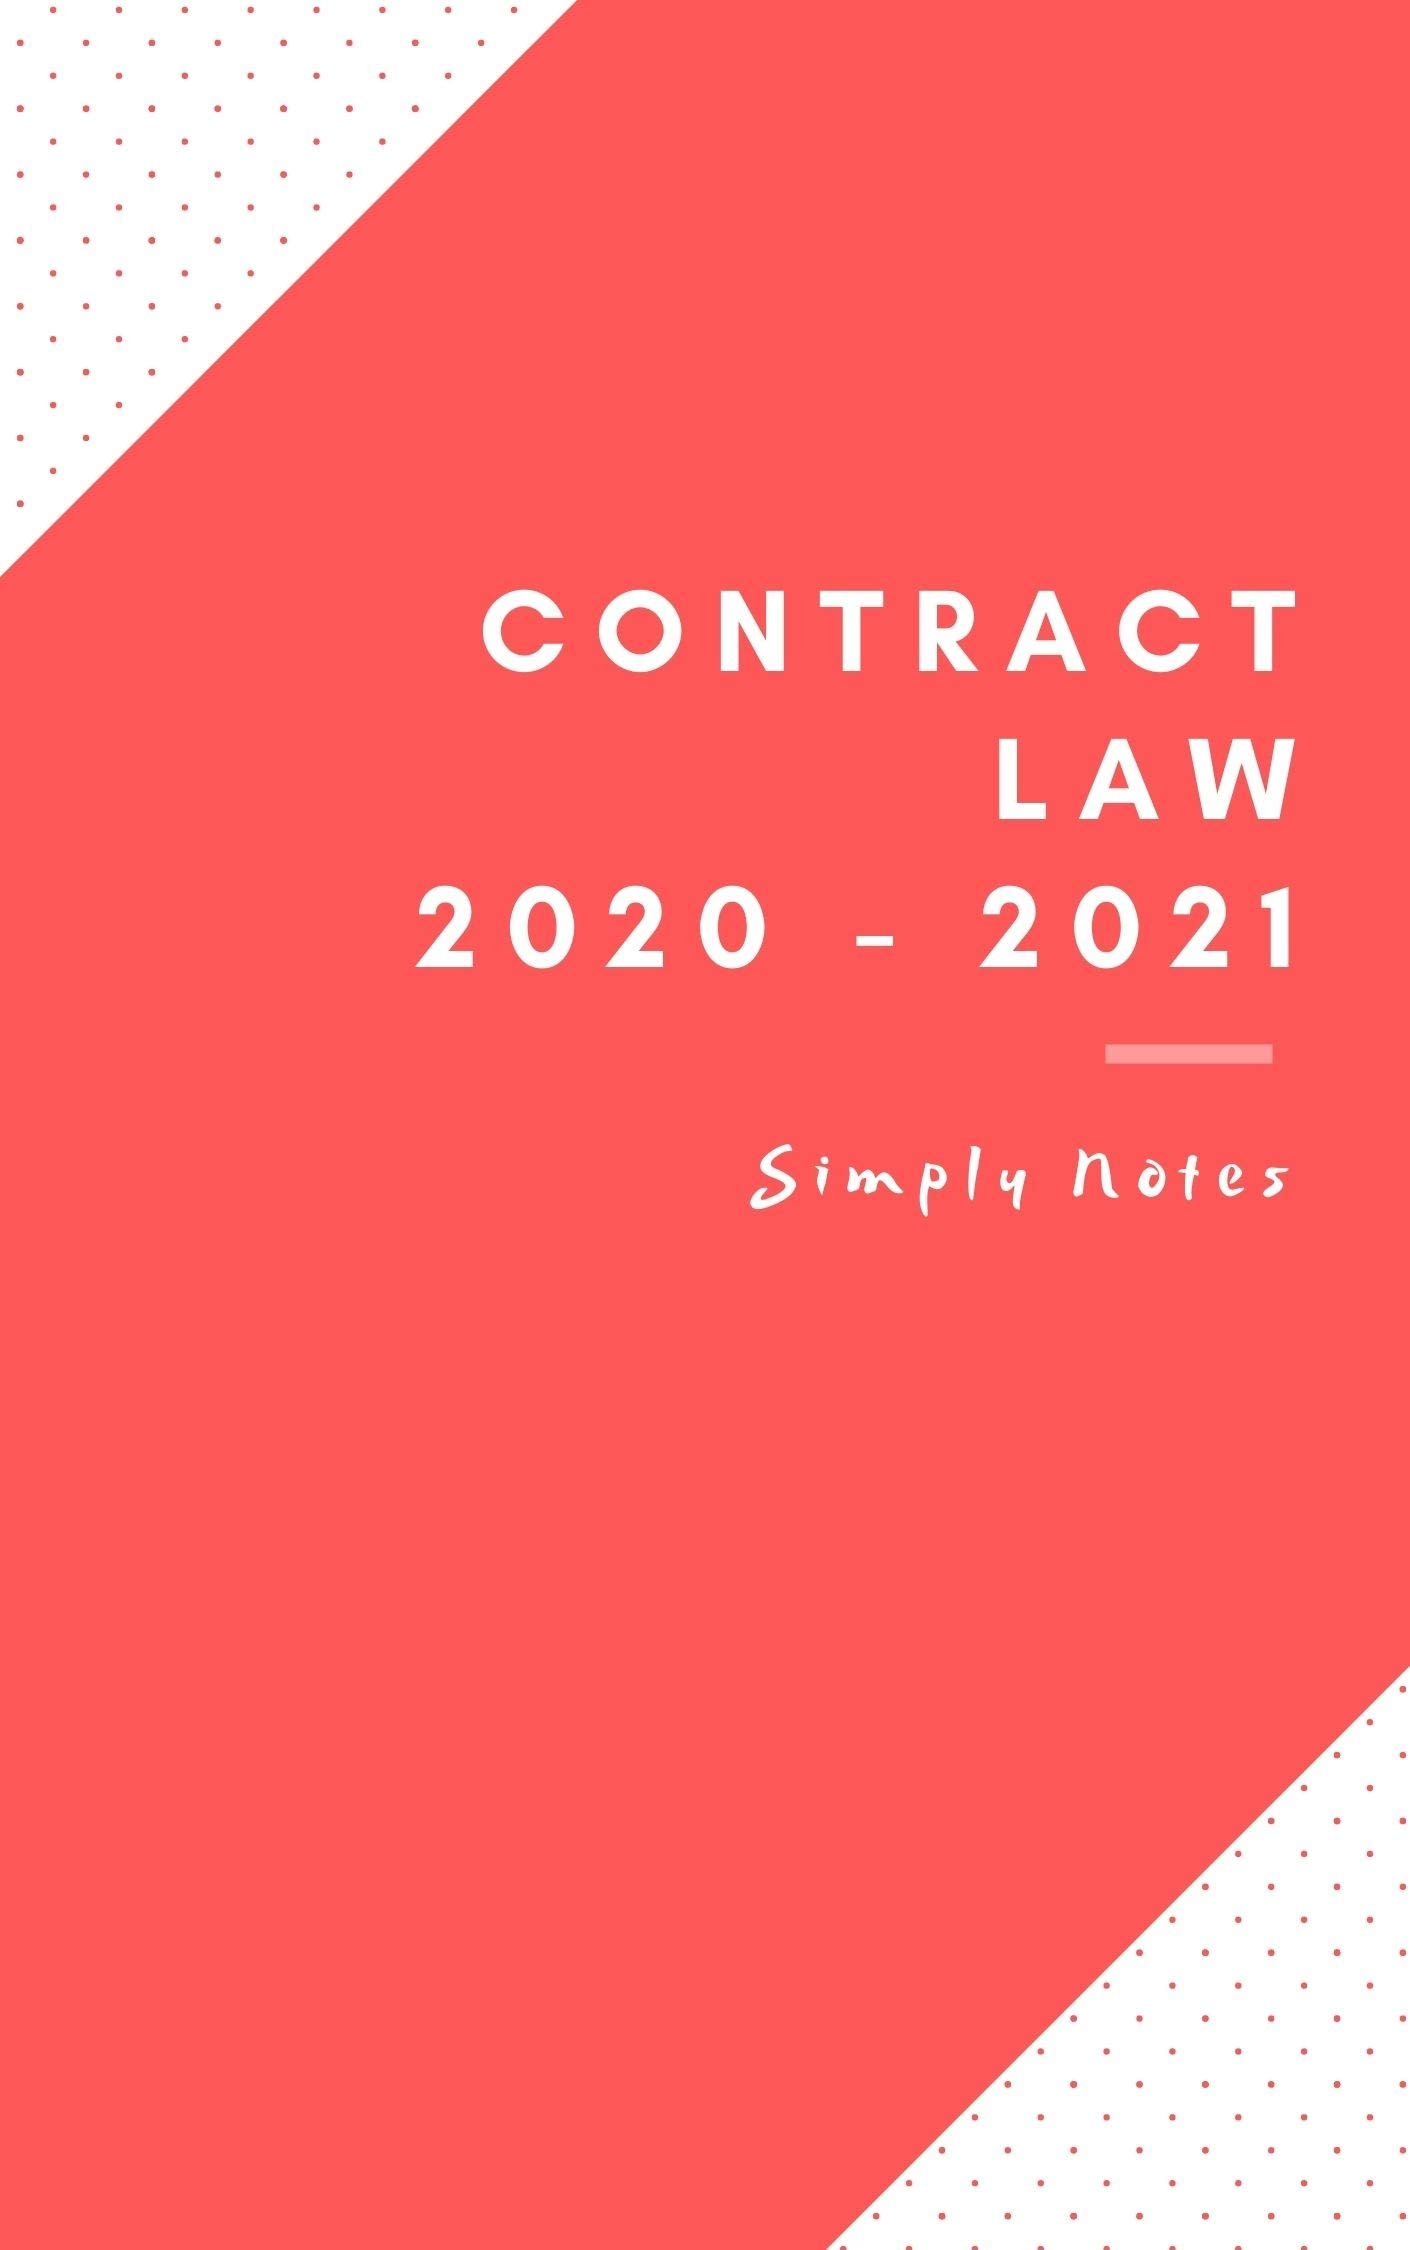 Contract Law Notes 2020/2021 LLB, GDL, LLM, MA, Law Conversion, PGDL, CiLEX